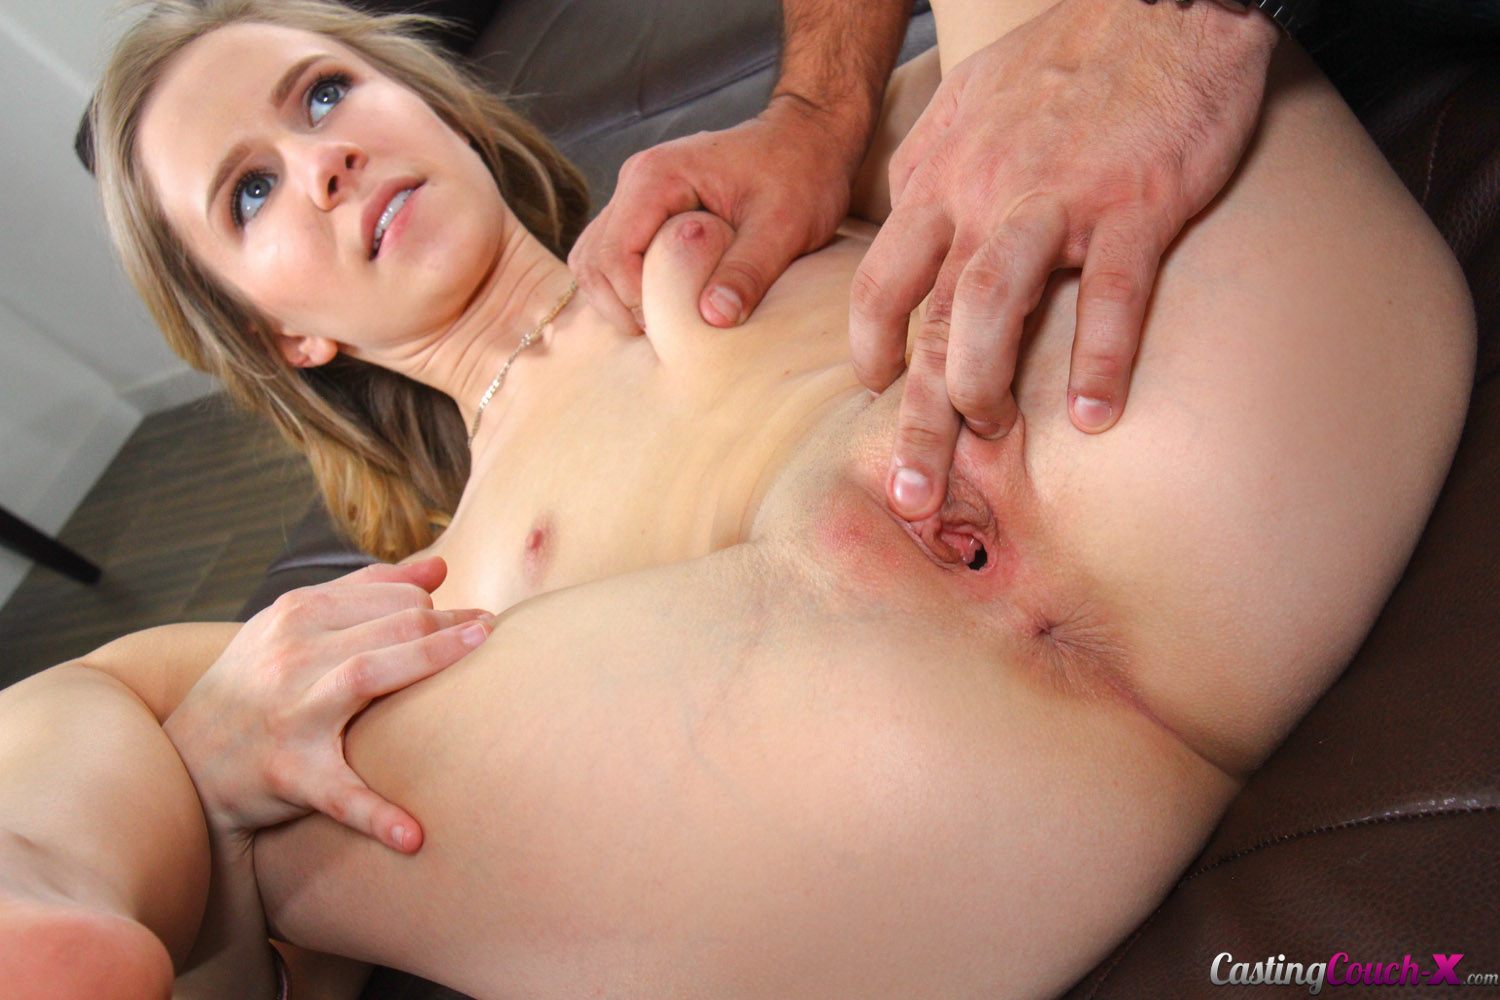 2 bitches getting covered in cum after long group bang 3